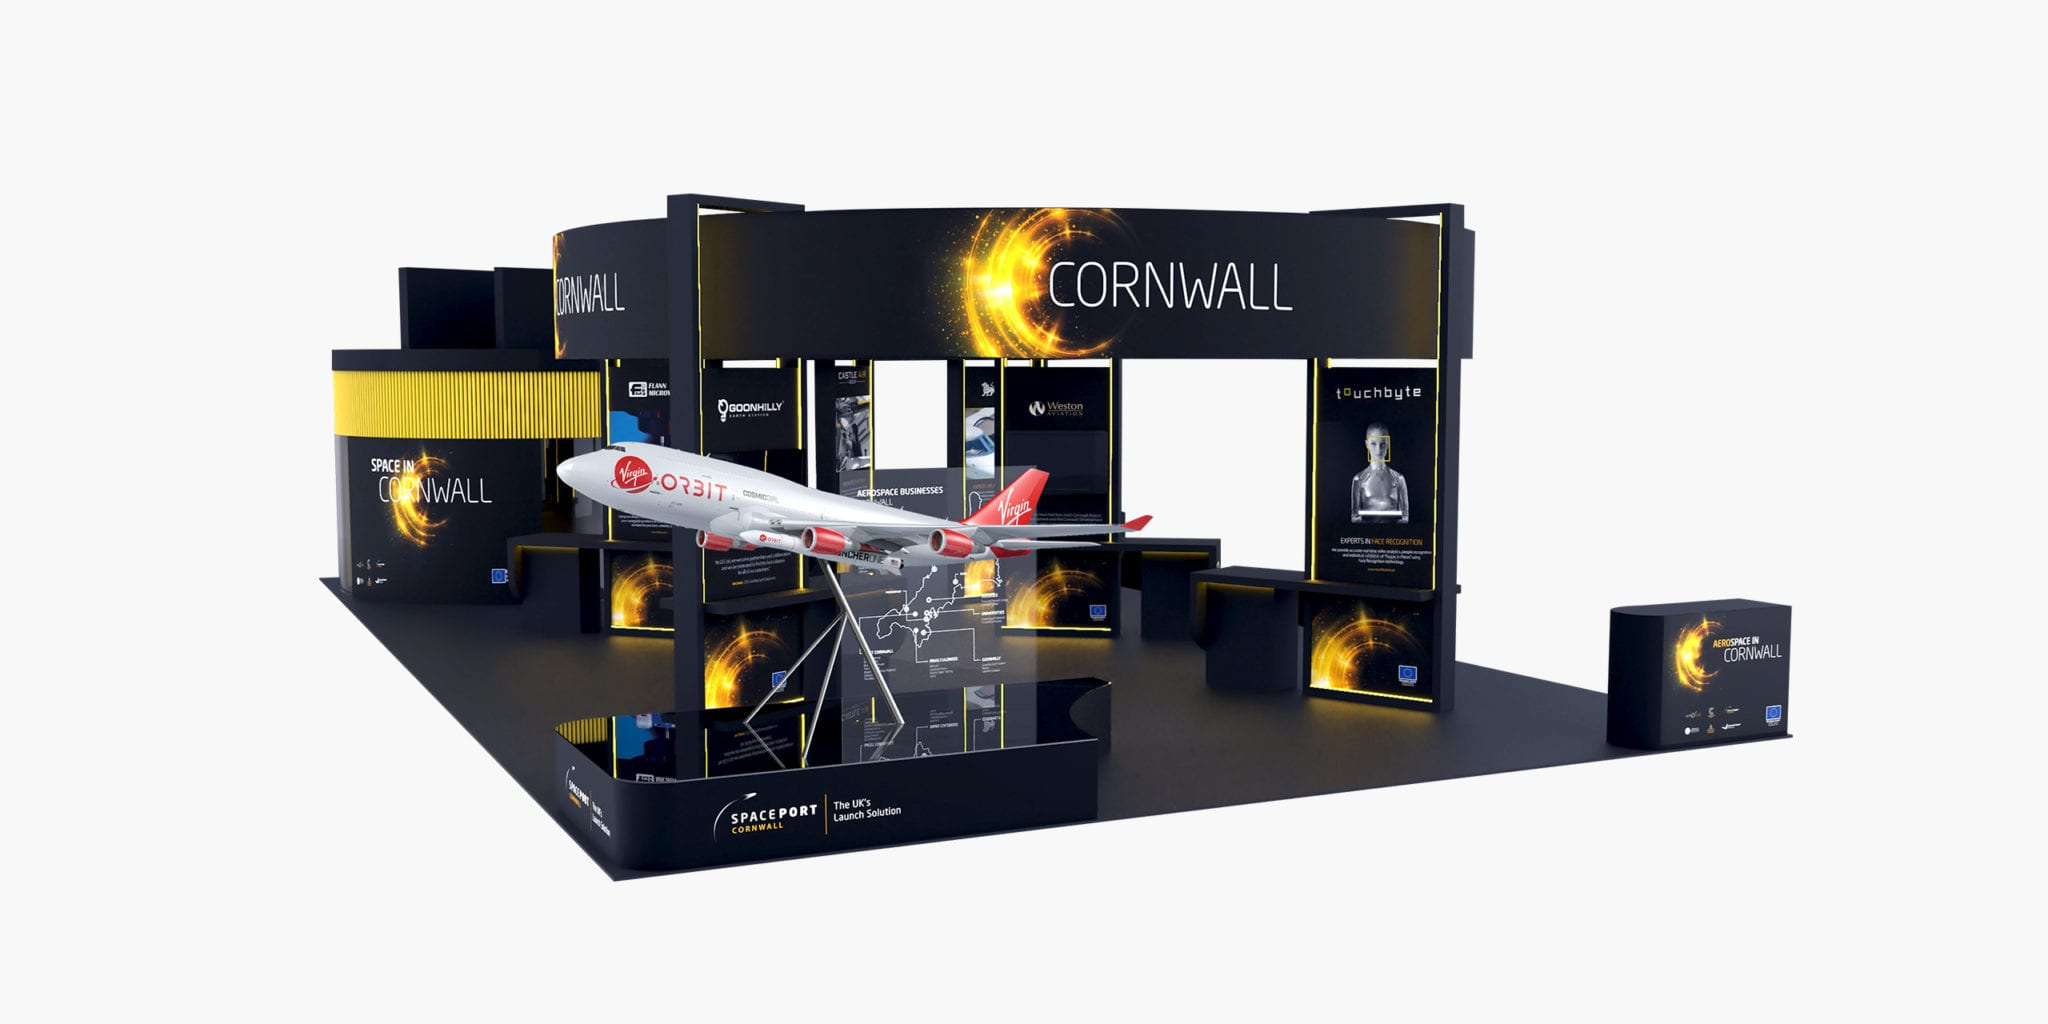 Complete 3D render of the Aerospace Cornwall Event stand with large Virgin Orbit 747 Cosmic Girl aircraft model included